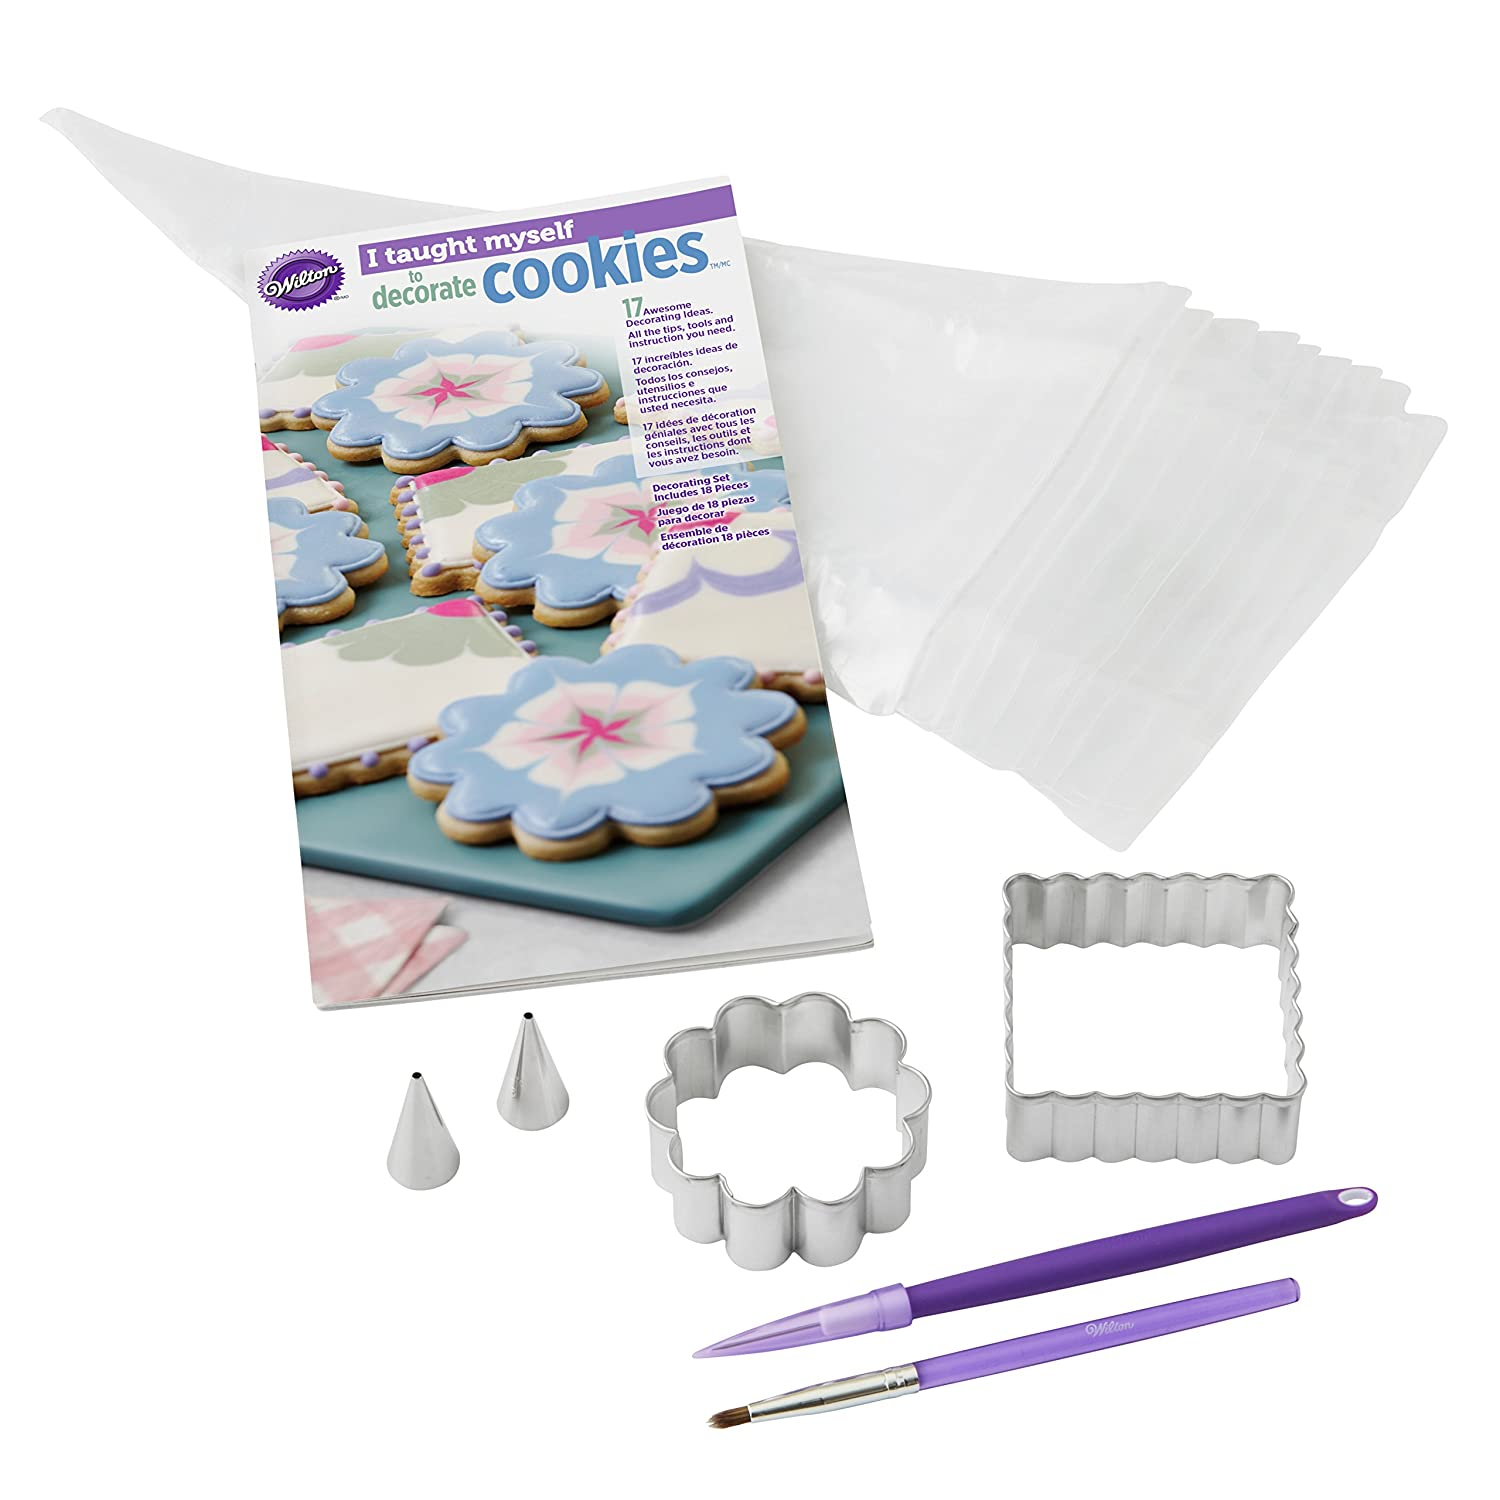 Wilton Industries 2104-7553I Taught Myself Cookie Decorating Book Set